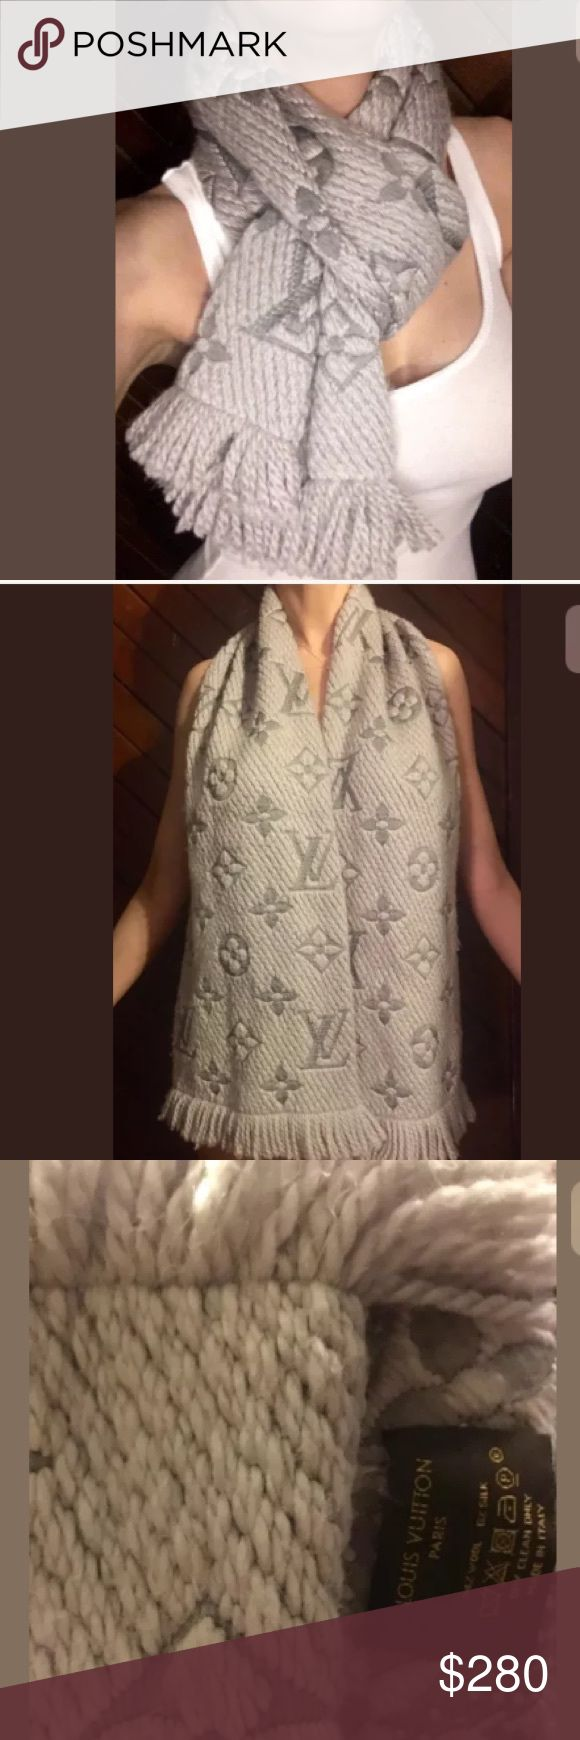 Louis Vuitton Pearl Grey Monogram Wool Silk Scarf Louis Vuitton Logomania Pearl gray wool silk monogram scarf. Comes neatly folded in its original box at 94% wool 6% silk. This scarf can be used for either man or woman, and is sure to keep you cozy and warm, and of course in fashion! This exact color still being sold brand new in stores!  174 x 30 cm  ( length  x width )   - 94% wool, 6% silk - Monogram pattern in organza silk - Jacquard technique - Long fringes finishing Louis Vuitton…